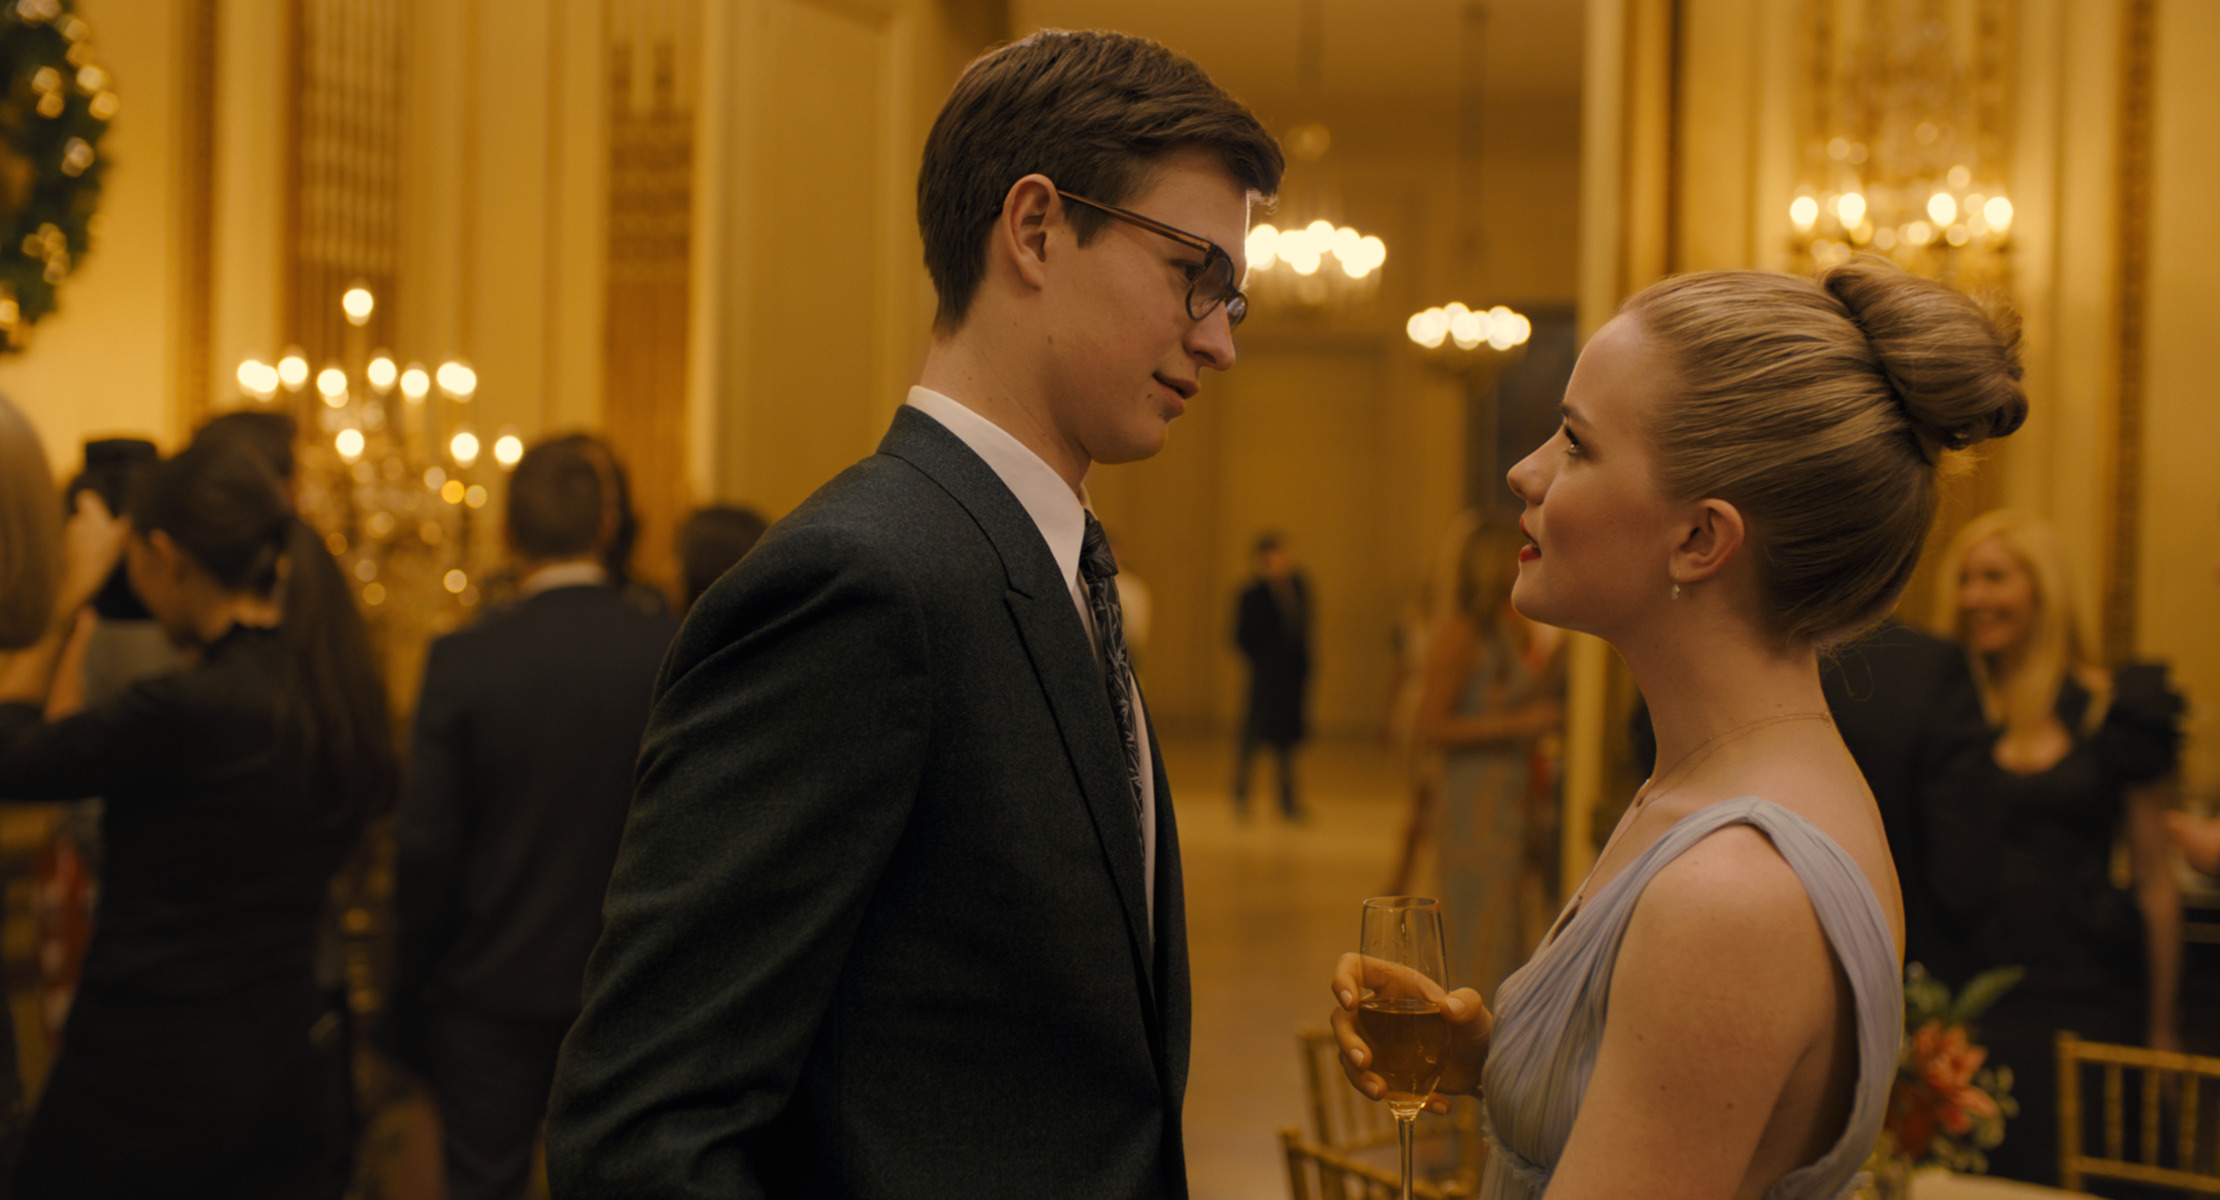 (L-r) ANSEL ELGORT as Theo Decker and WILLA FITZGERALD as Kitsey Barbour in Warner Bros. Pictures' and Amazon Studios' drama, THE GOLDFINCH, a Warner Bros. Pictures release. (Image: Warner Bros)